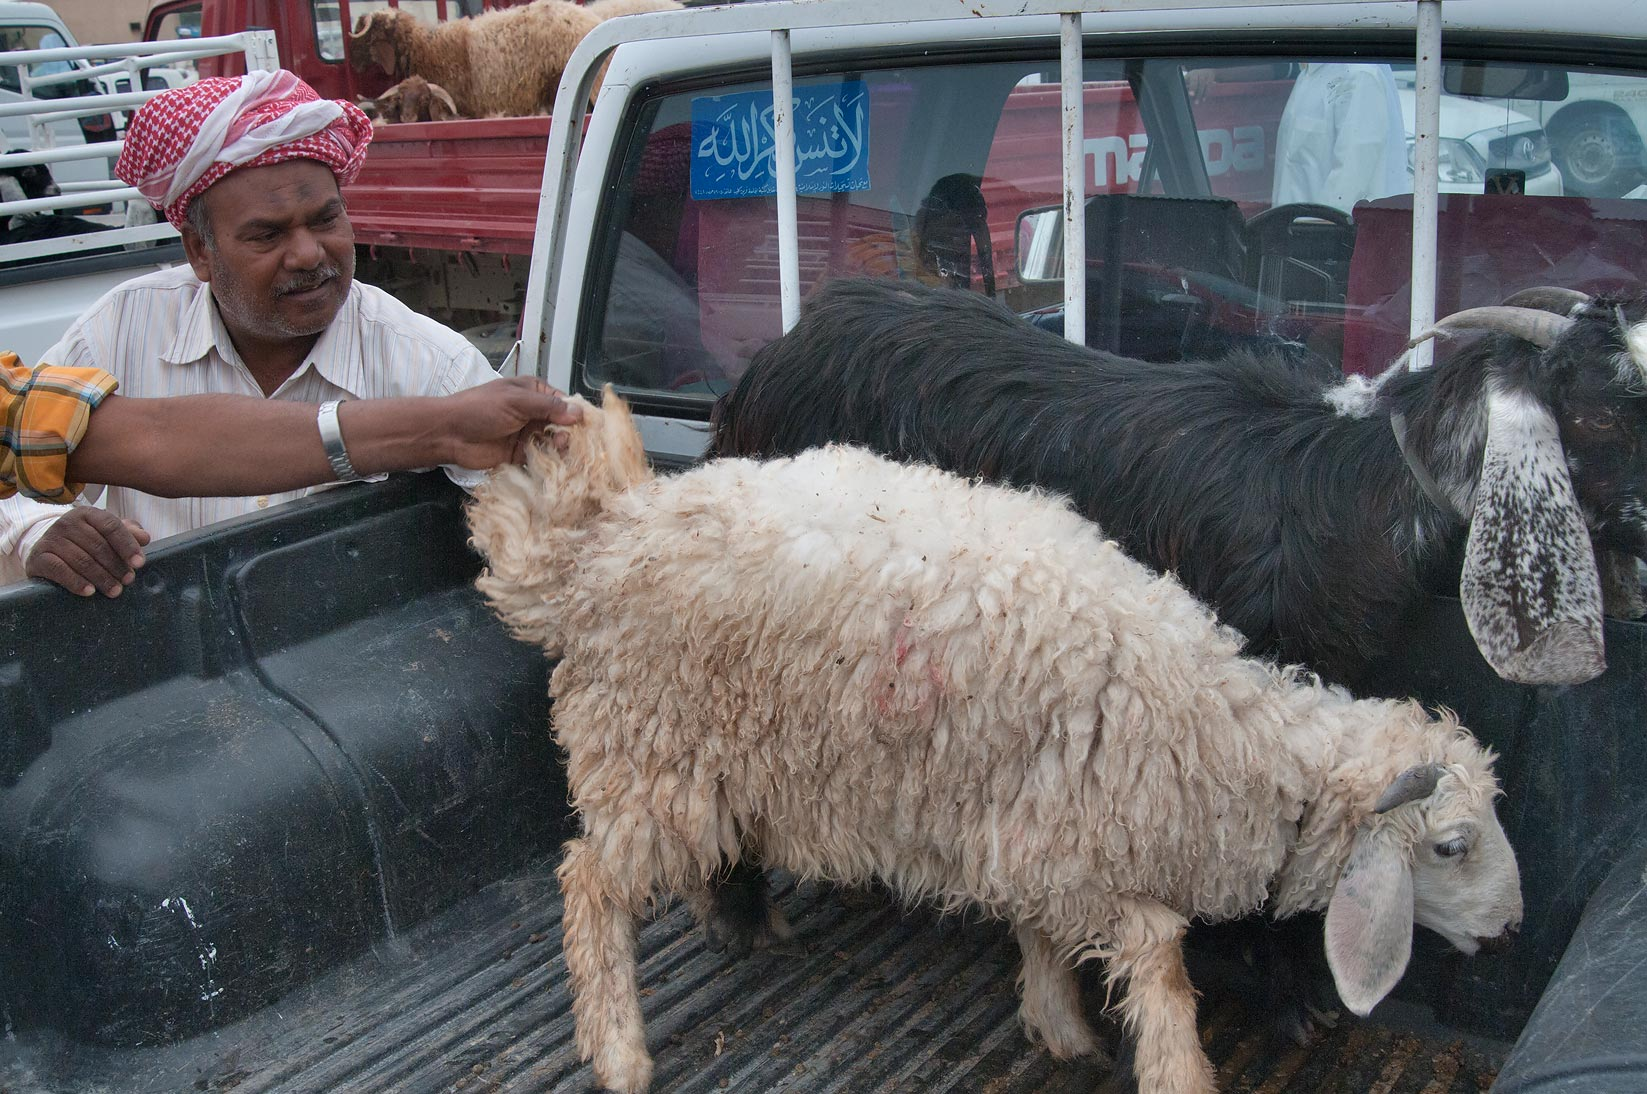 Examining quality of animals in a truck in Sheep...Wholesale Markets area. Doha, Qatar